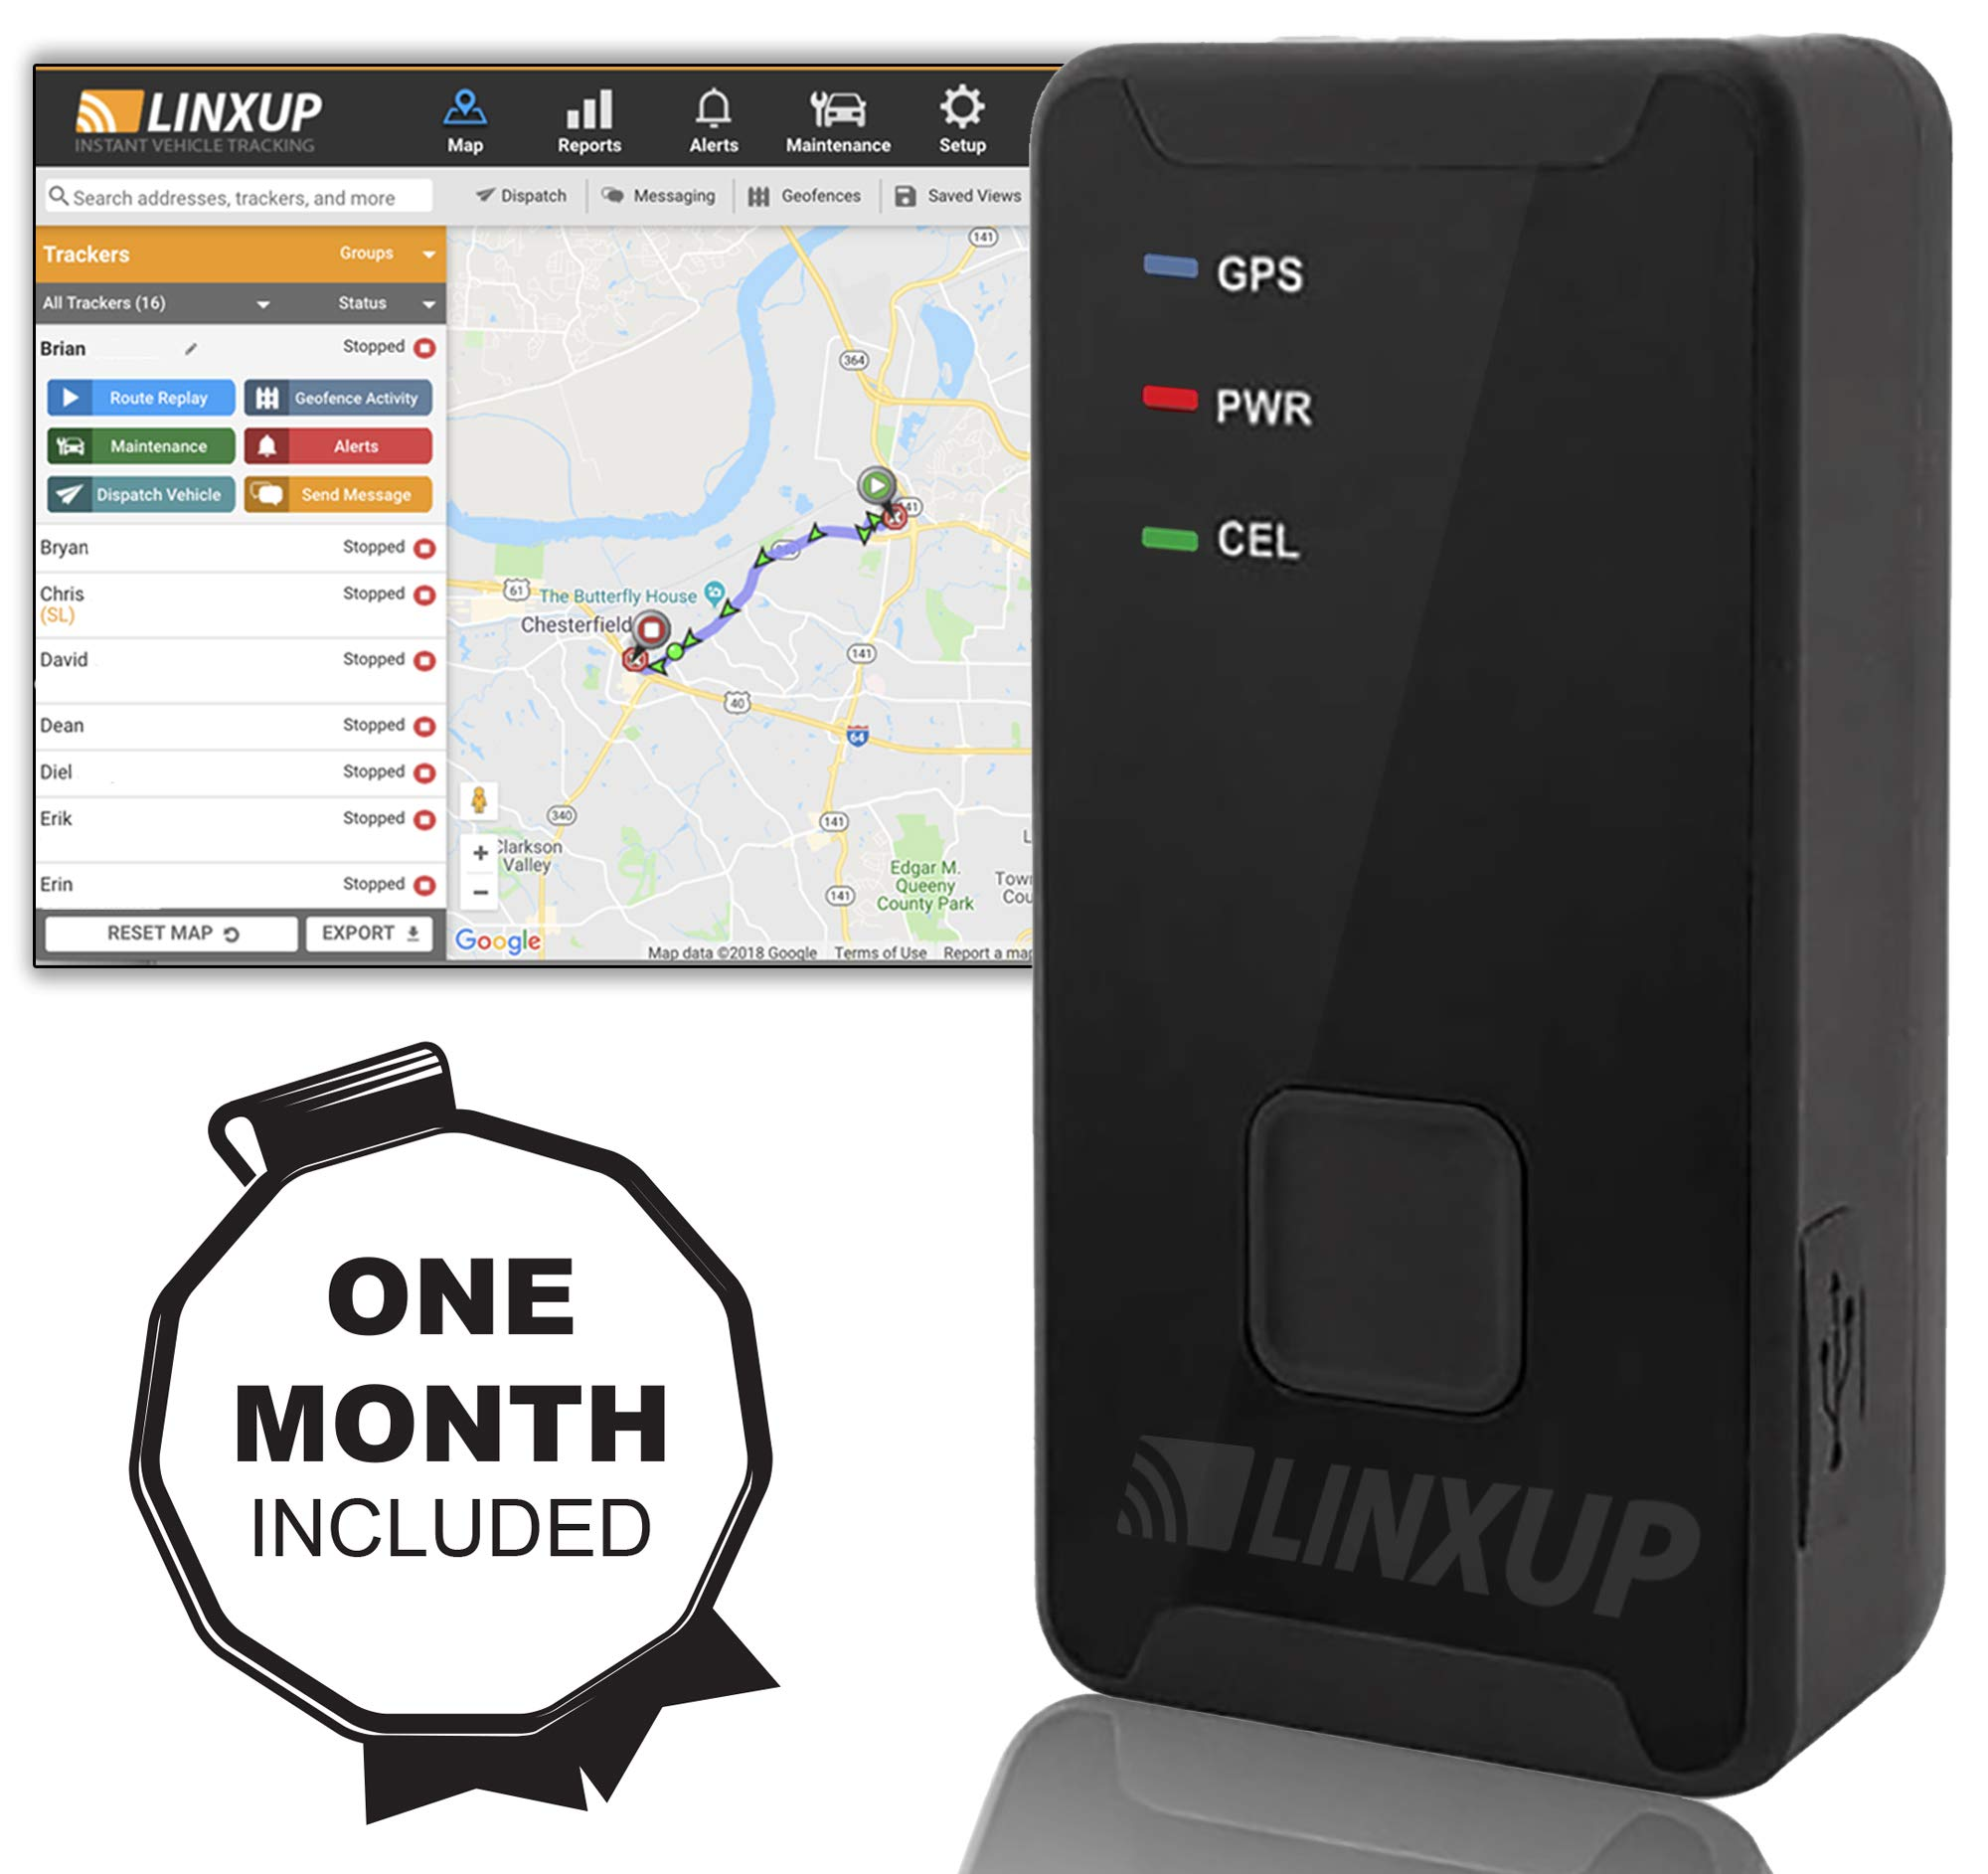 Linxup LTAS1_FM Mini GPS Tracker and Tracking with Free Month Service Included, Mini +1